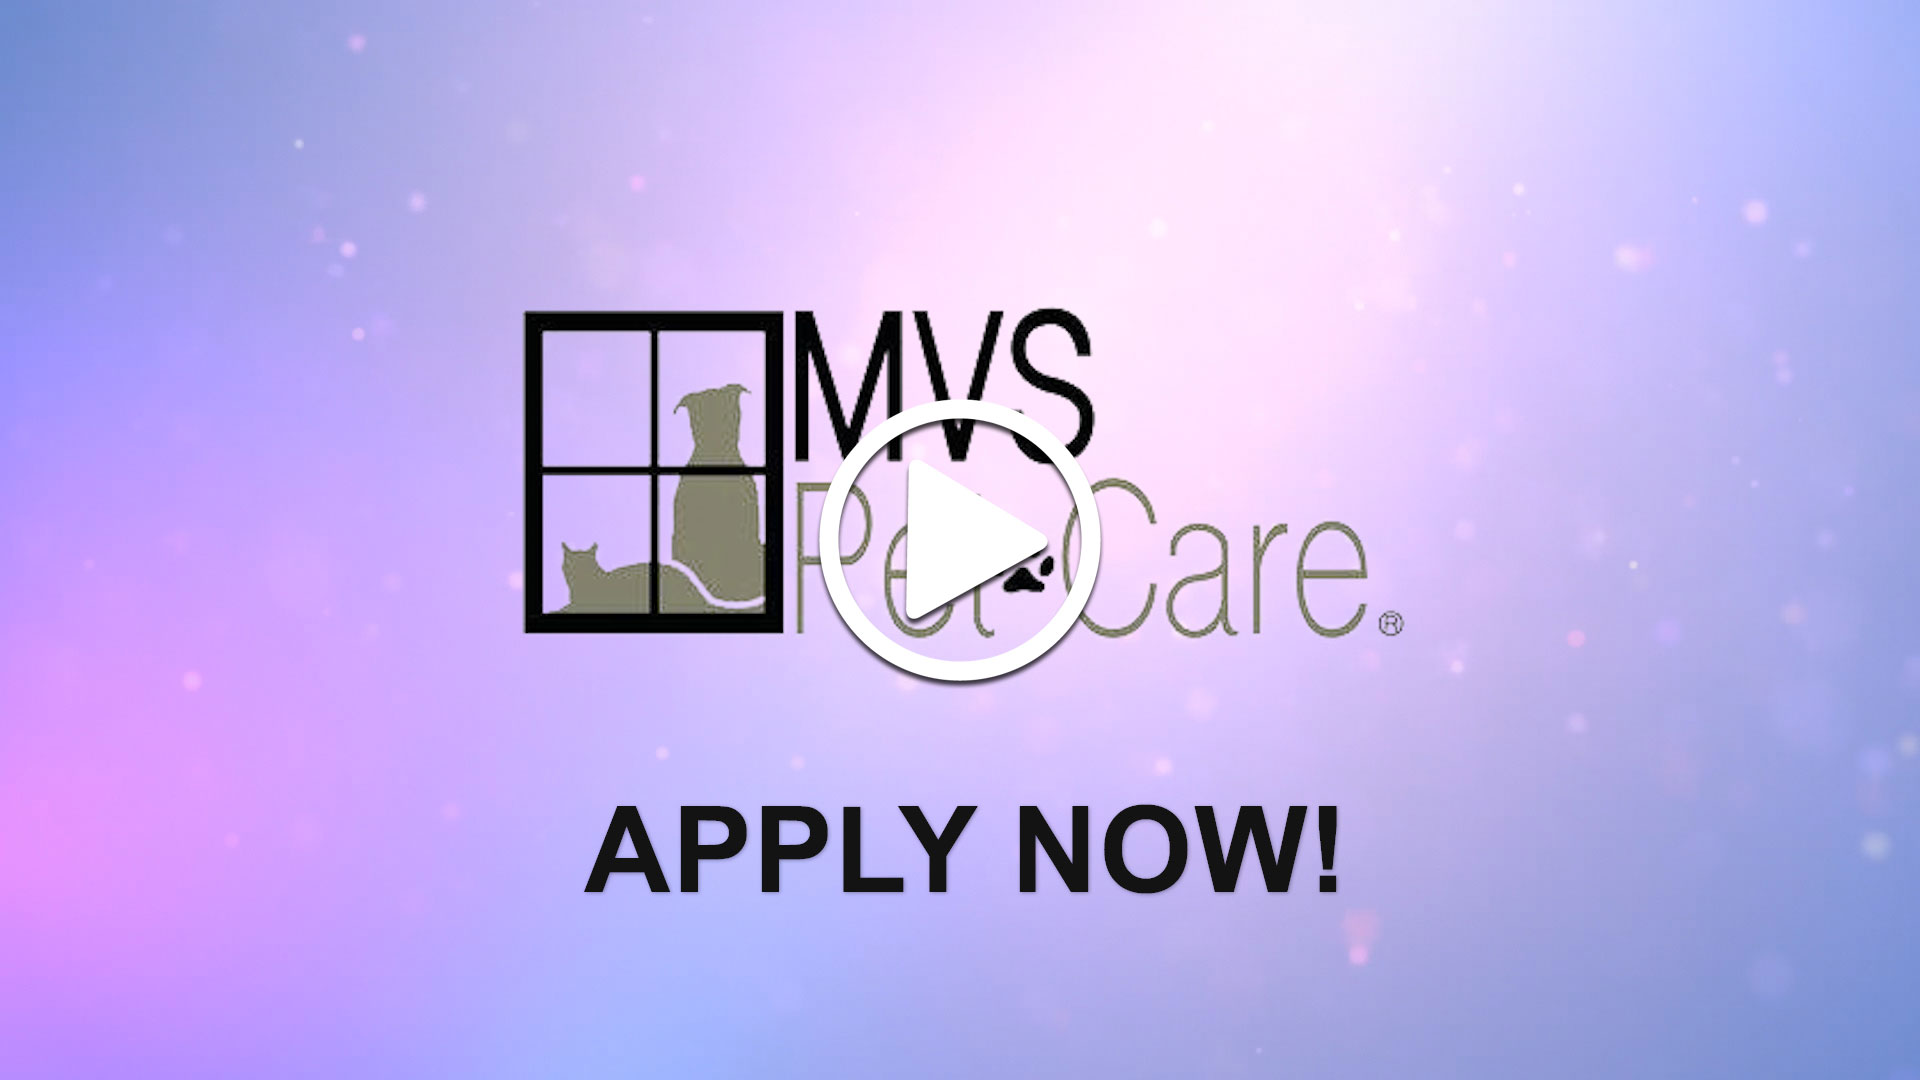 Watch our careers video for available job opening Full Time Veterinarian in Pittsburgh, Pennsylvania